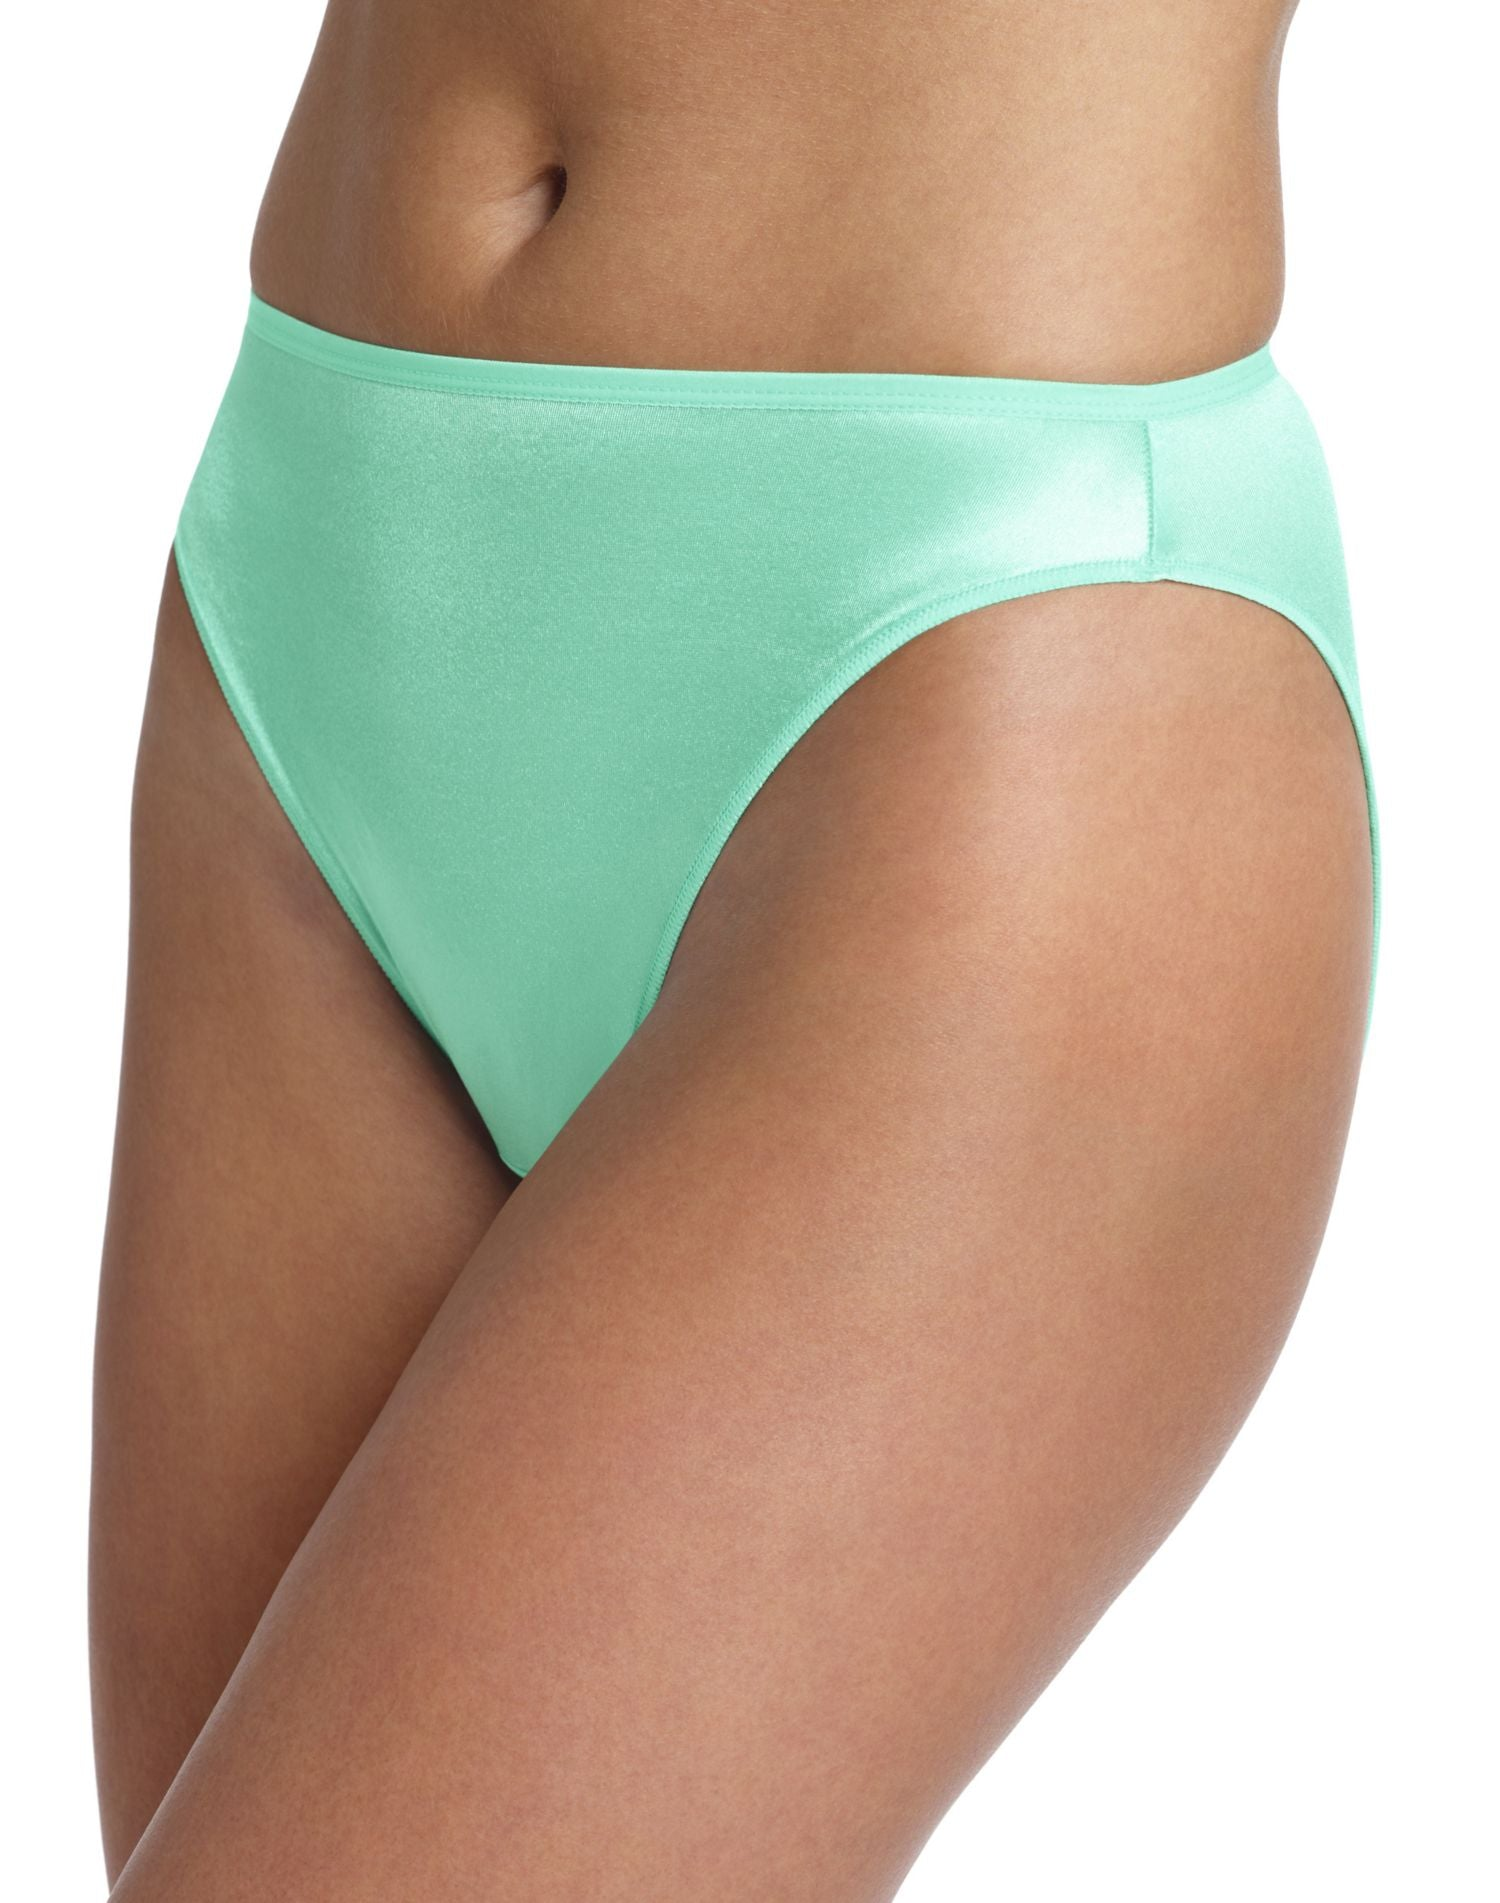 58963546292c Hanes Women's Body Creations ComfortSoft Stretch Nylon Hi-Cut Panties 3 Pack